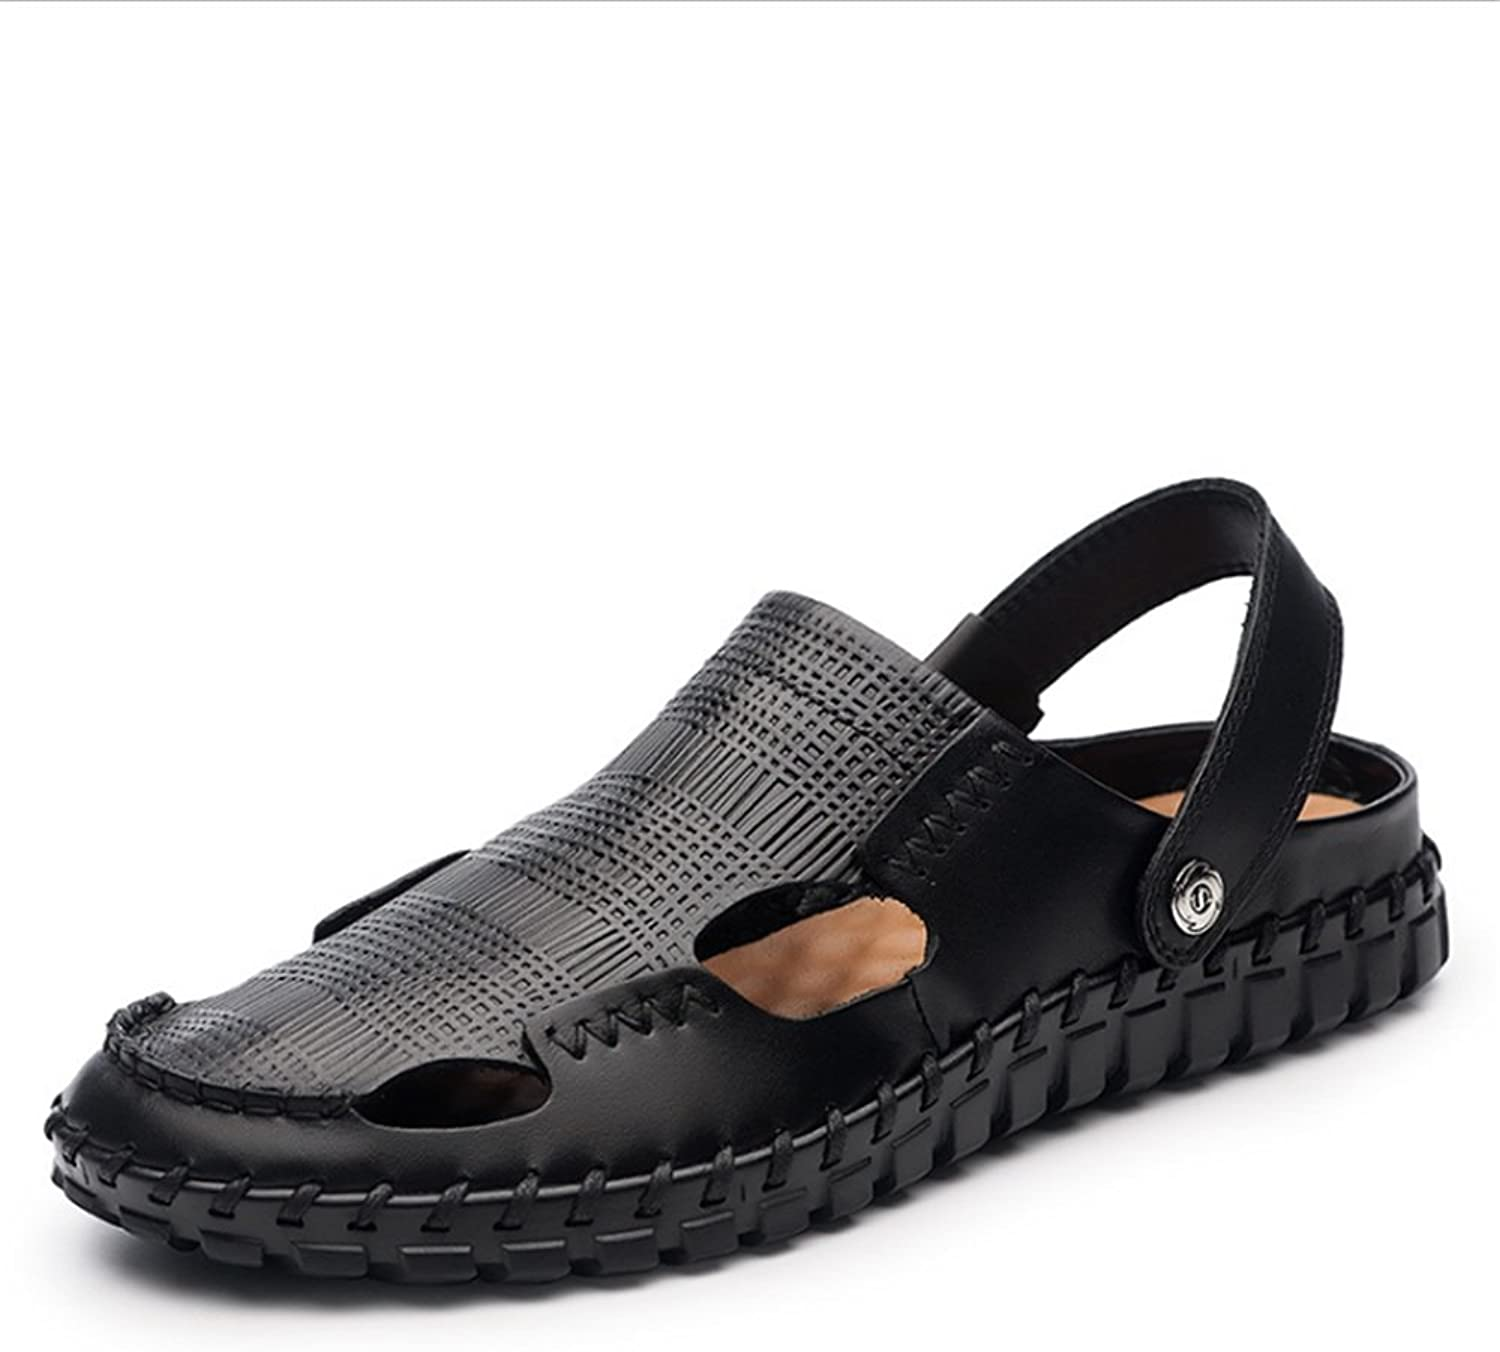 Sandal Men's Summer Casual Leather Breathable and Anti-Skid shoes (24.0-27.5) cm Anti-Skid Breathable